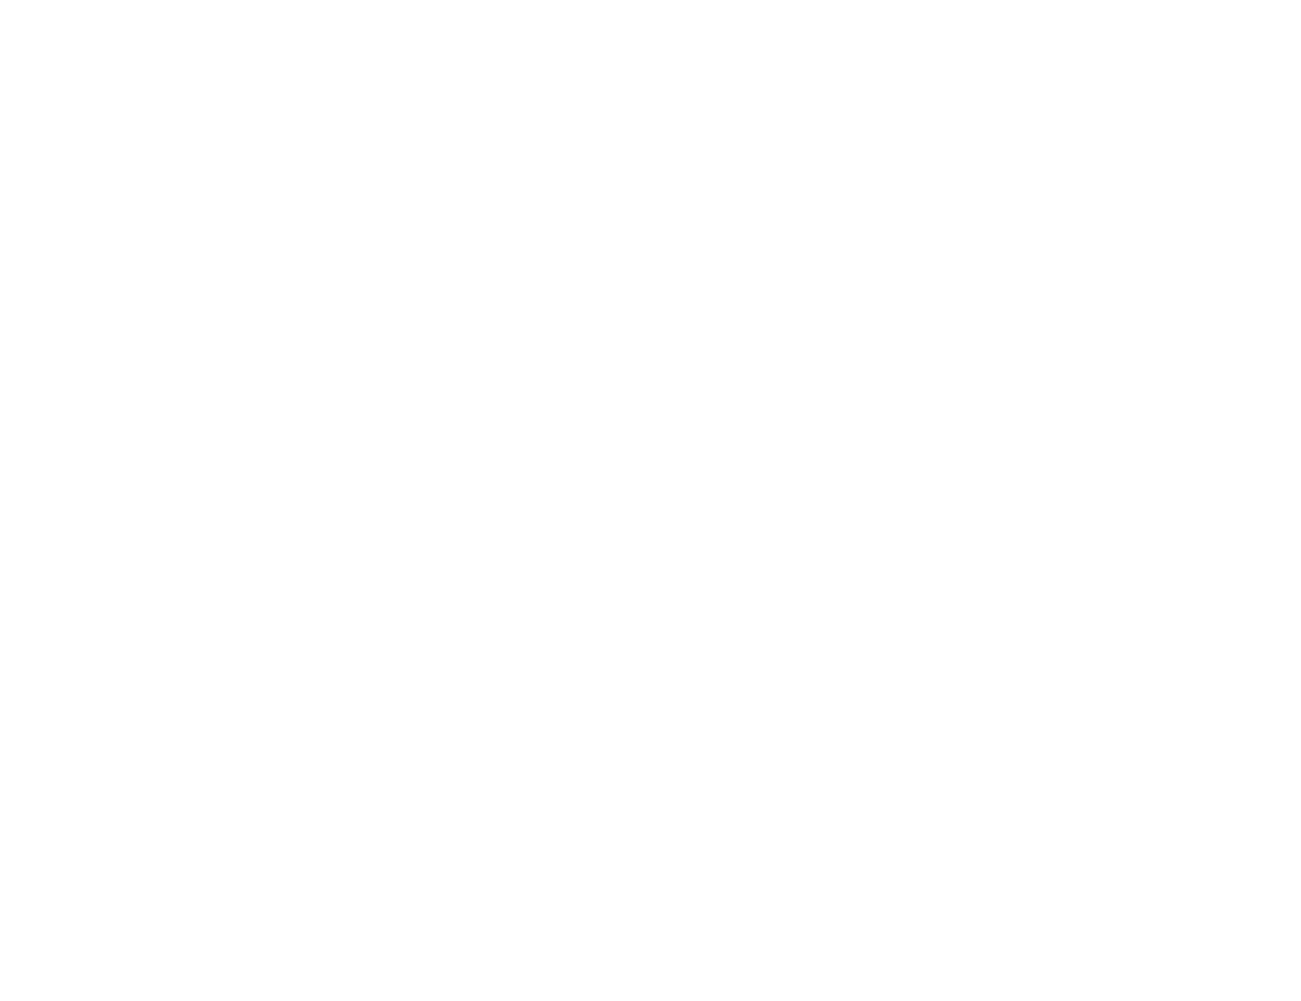 Veriforce. Reducing Supply Chain Risk to Enable Better Business